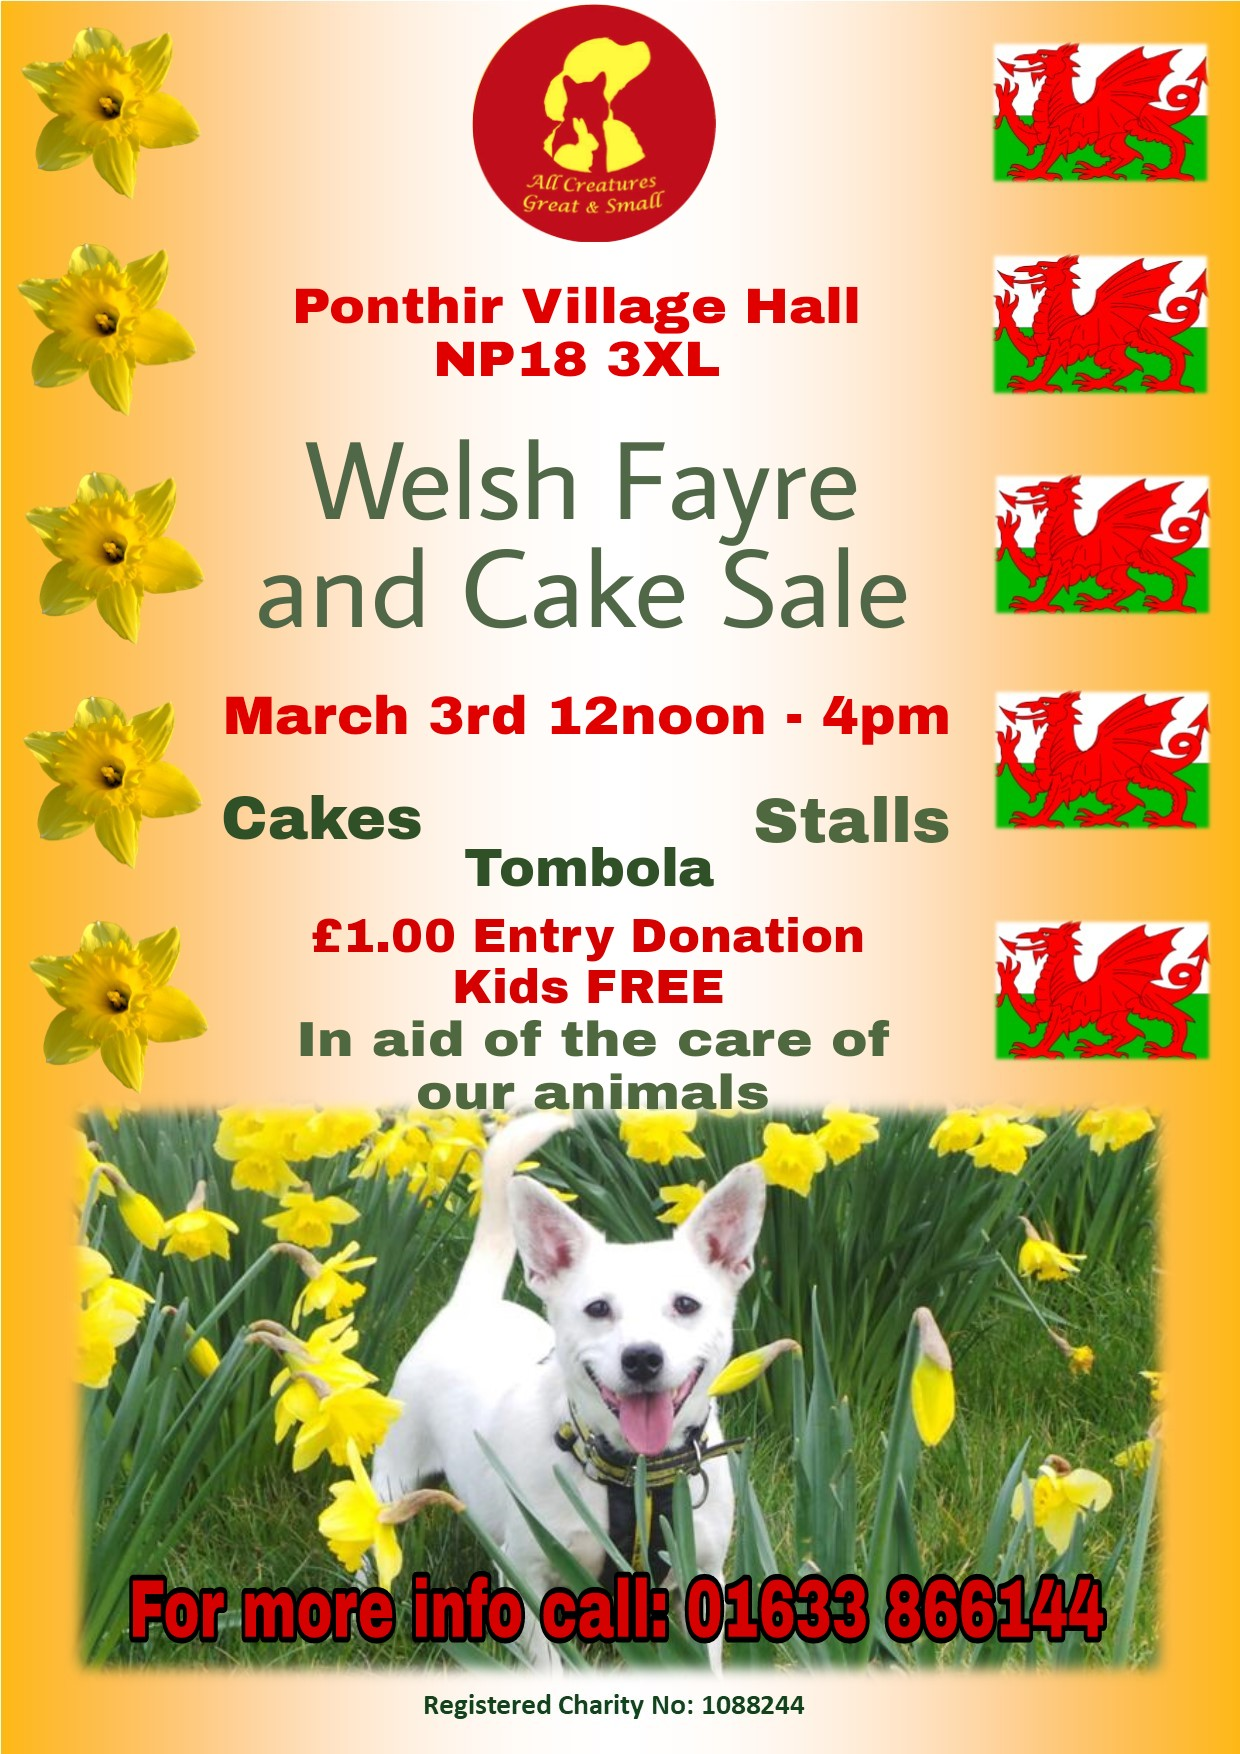 Welsh Fayre and Cake Sale for All Creatures Great and Small